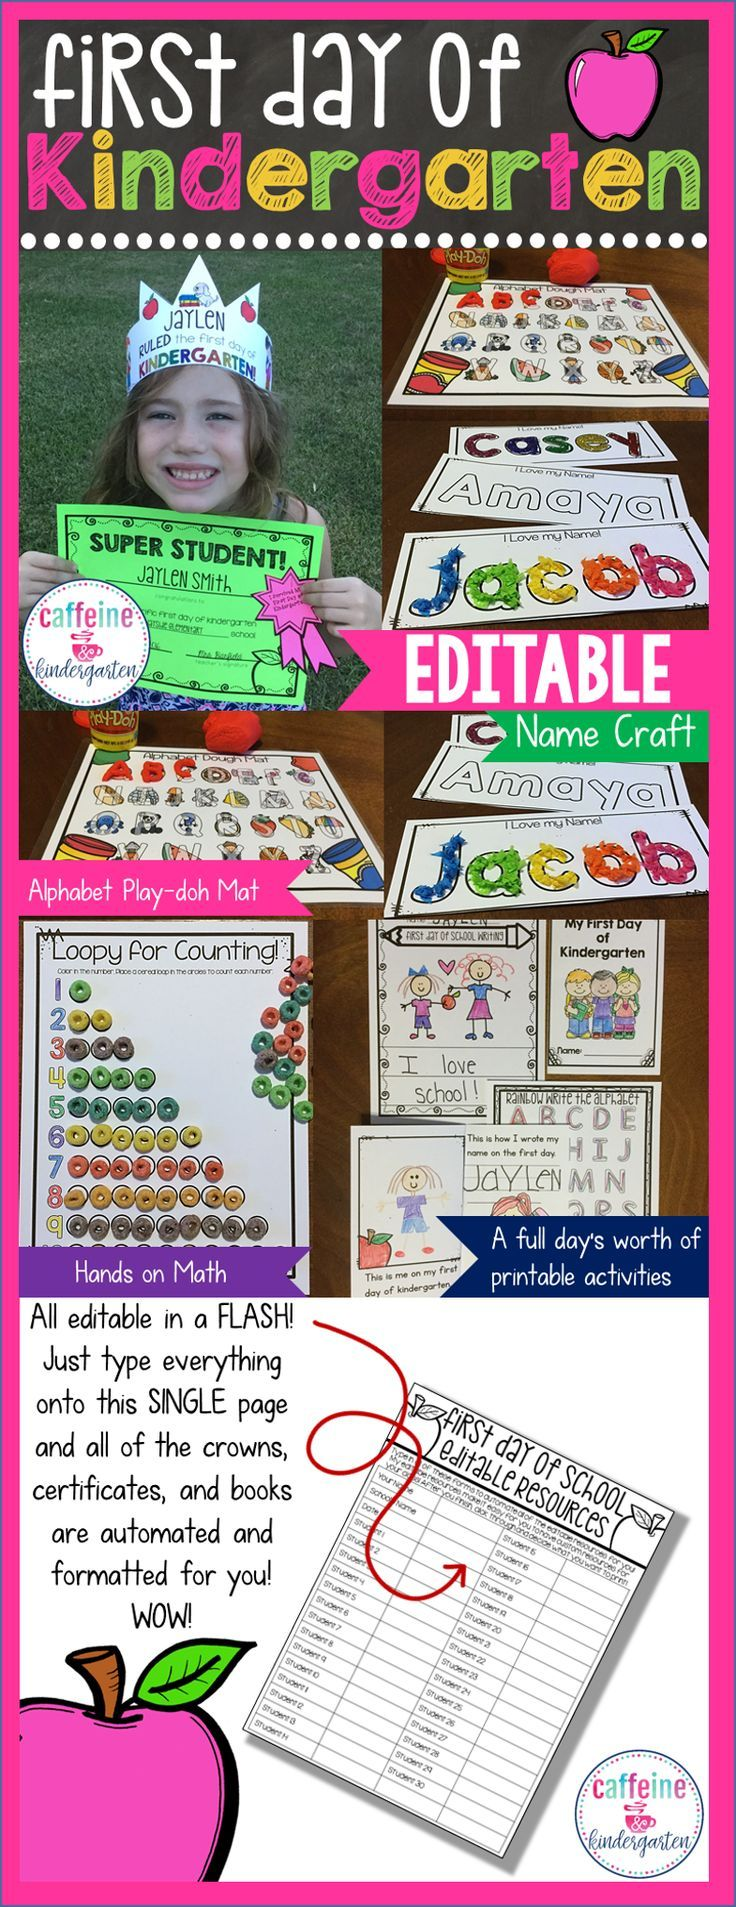 First Day Of Kindergarten Lesson Plans, Activities For The Whole Day